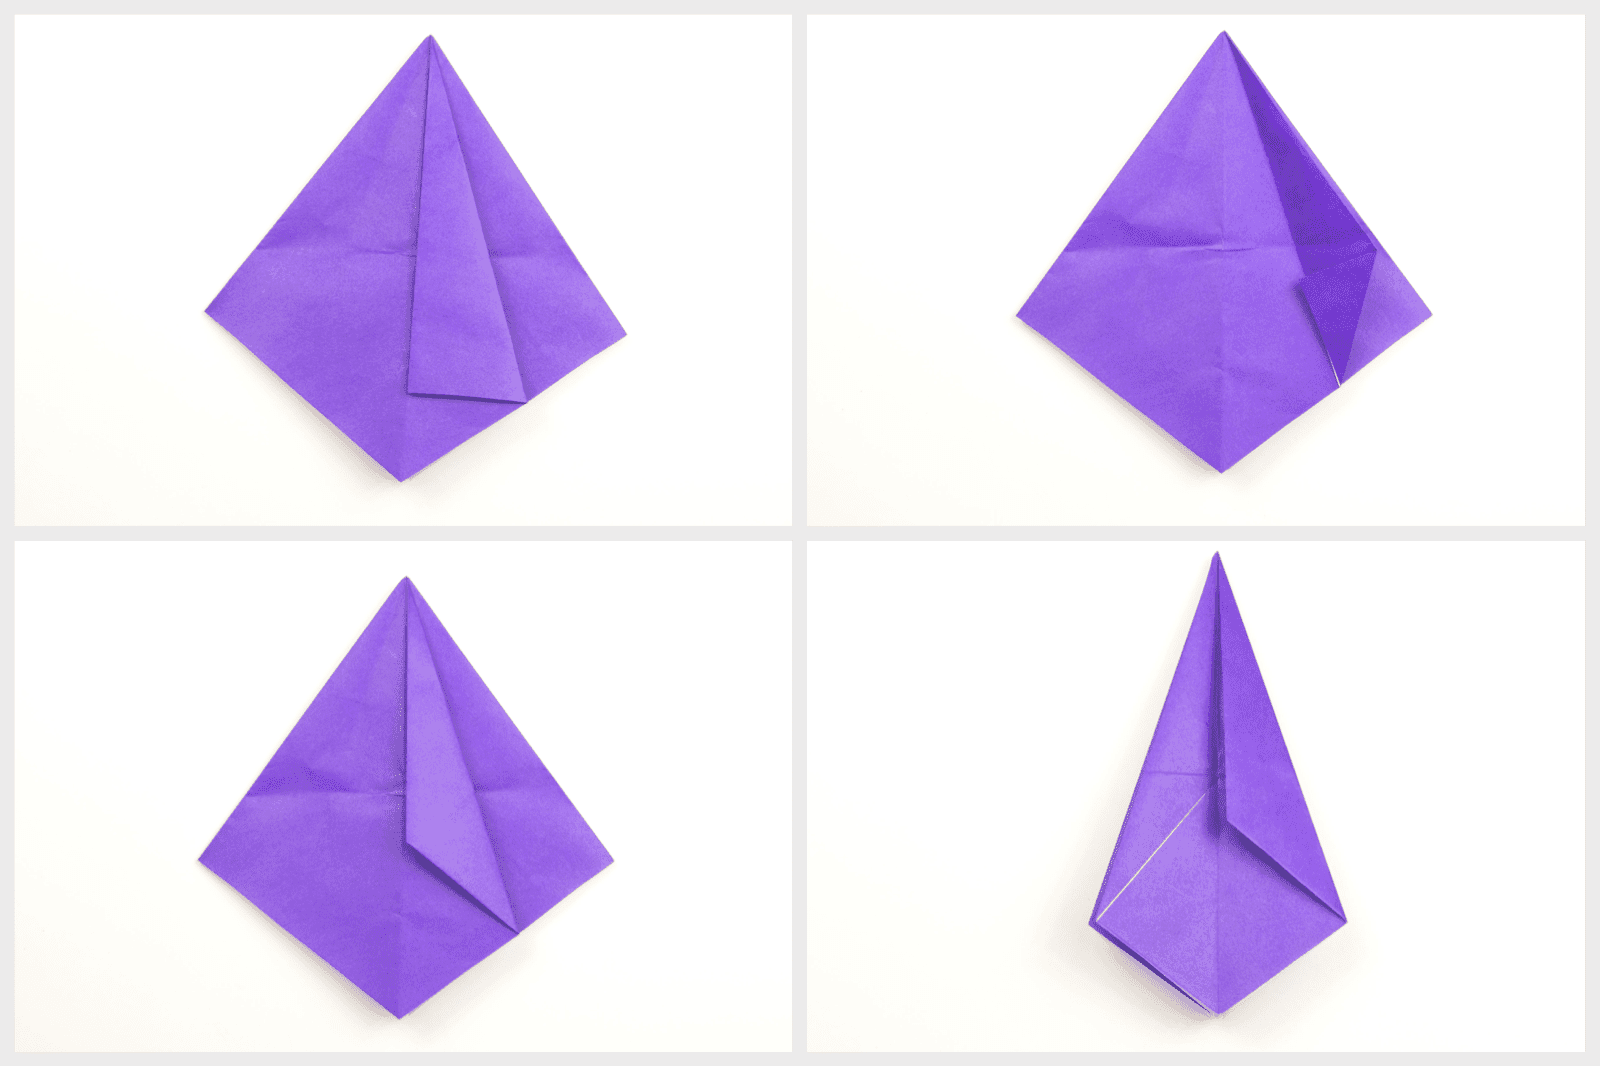 Steps of folding the paper